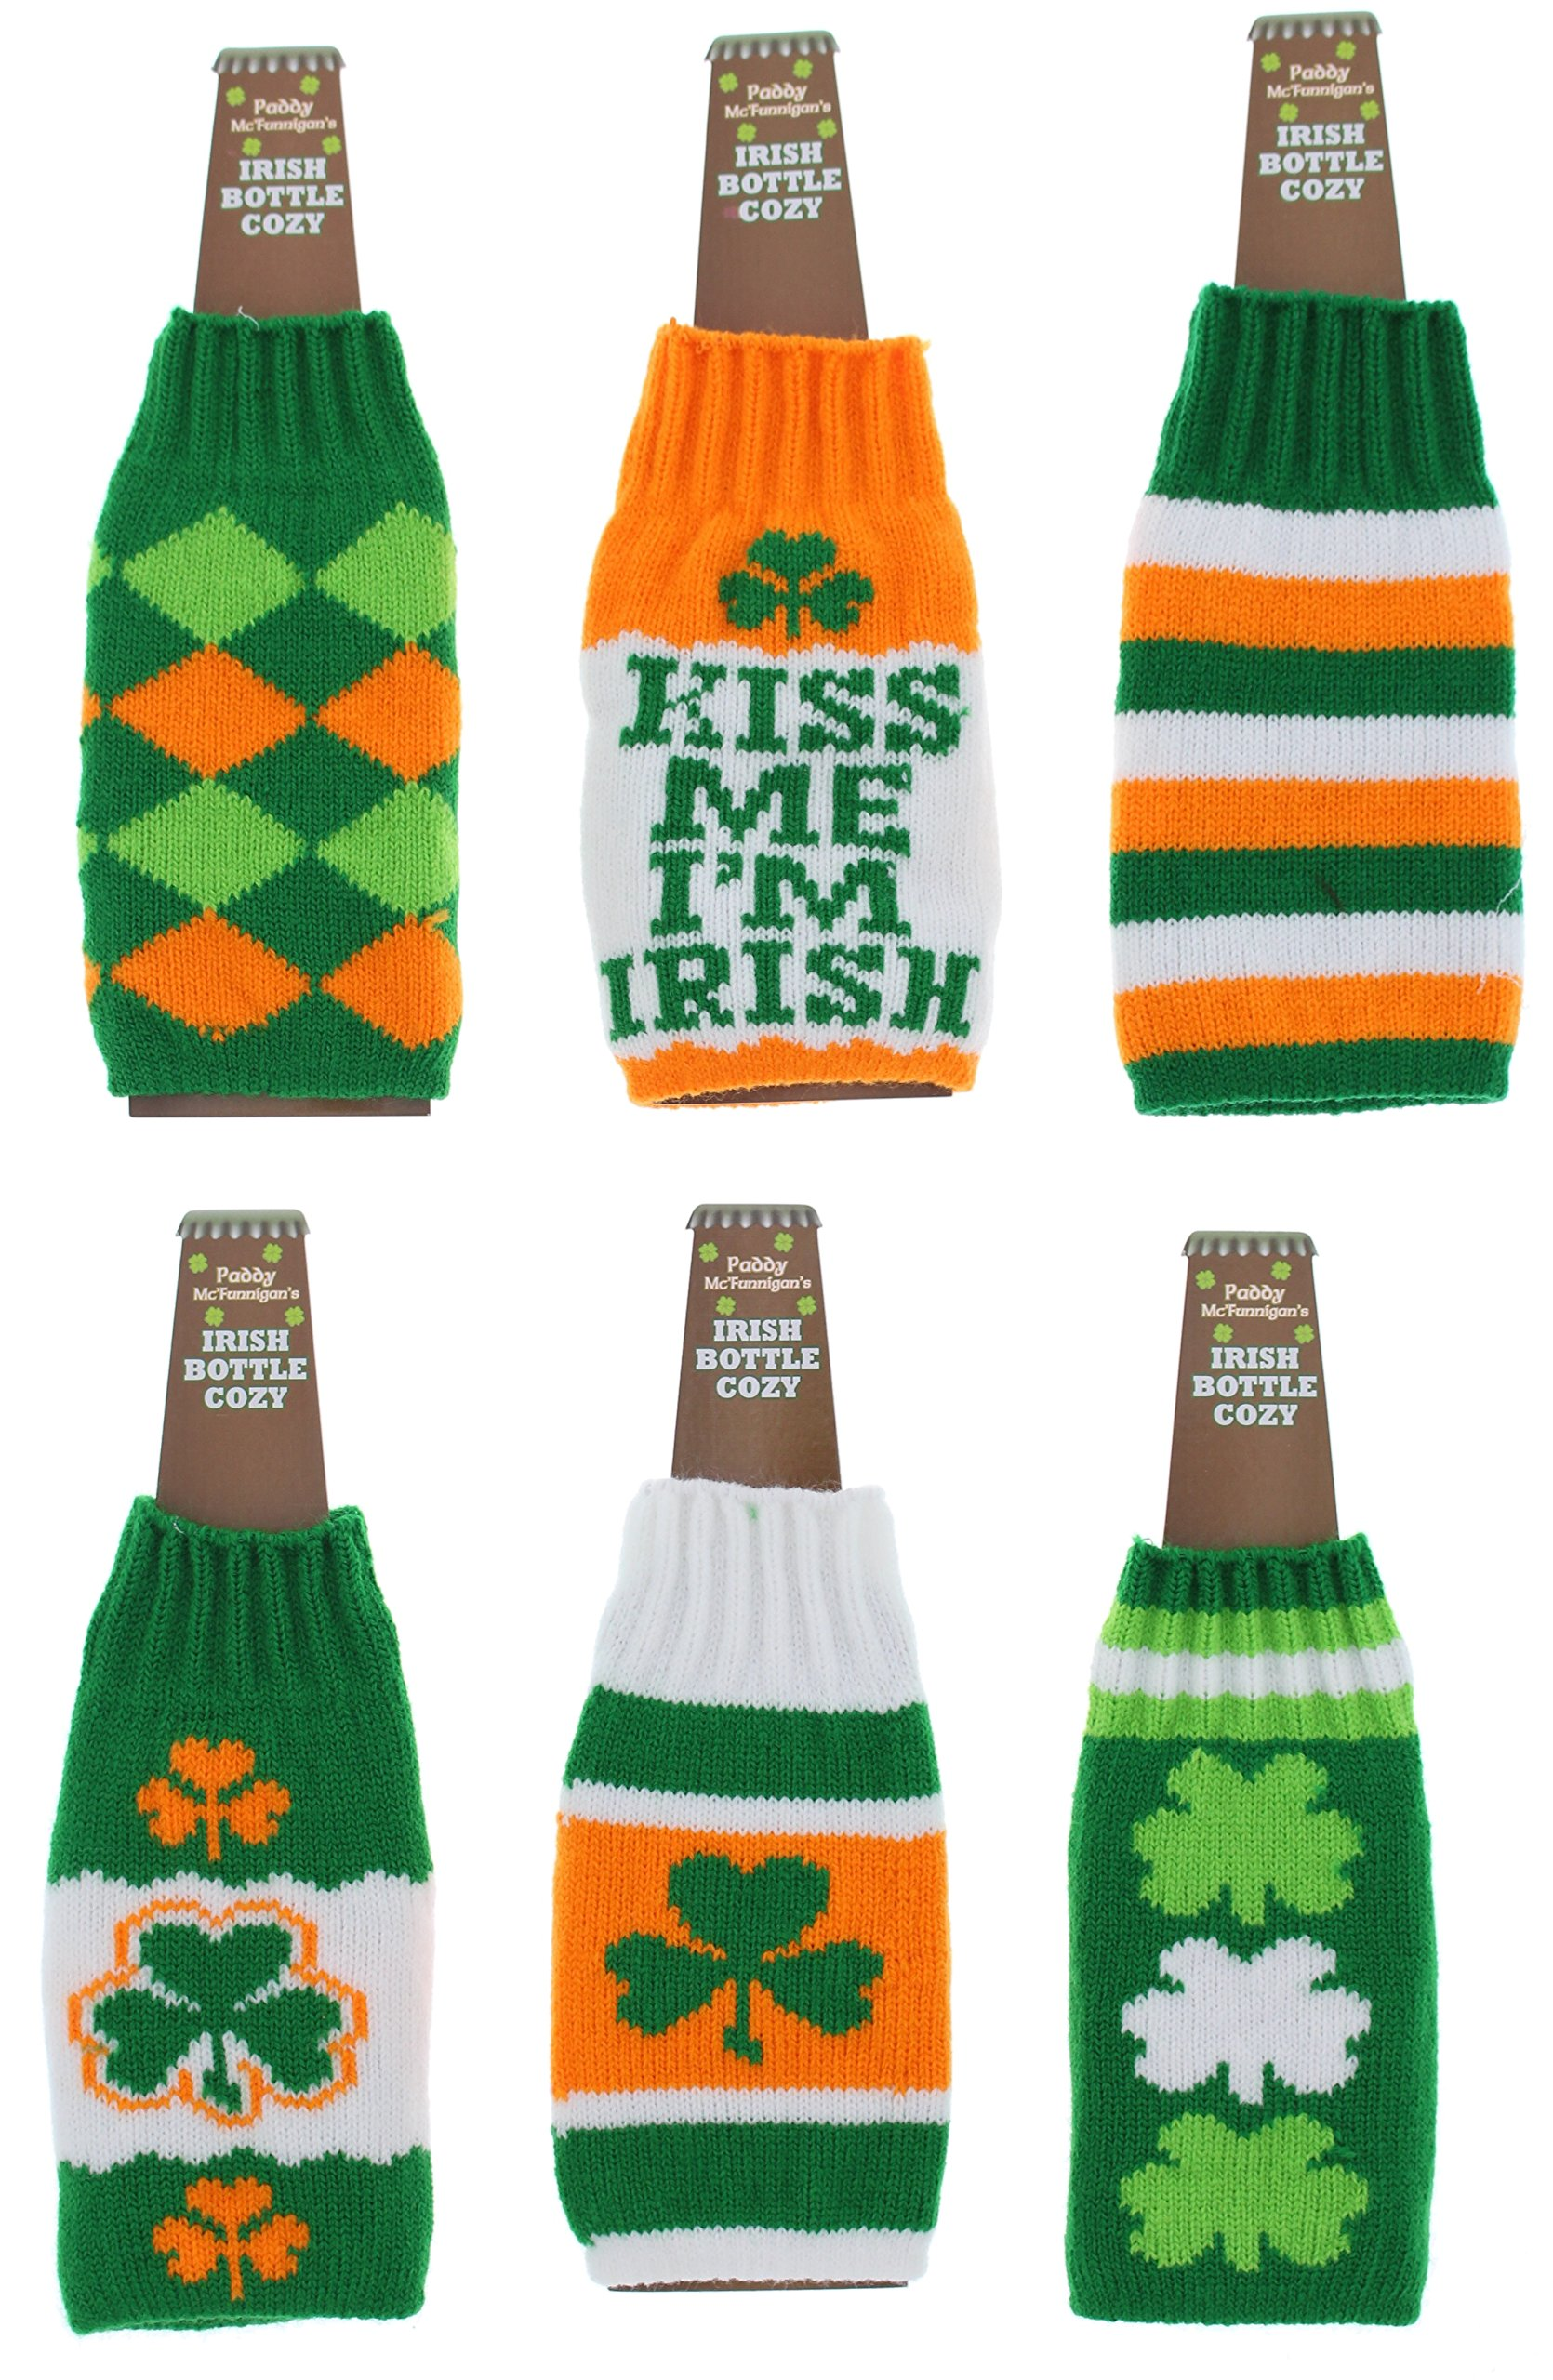 6a17d5ef9f2f3 Get Quotations · Paddy McFinnegan's Irish Beer Bottle Cozy for St. Patrick's  Day ...